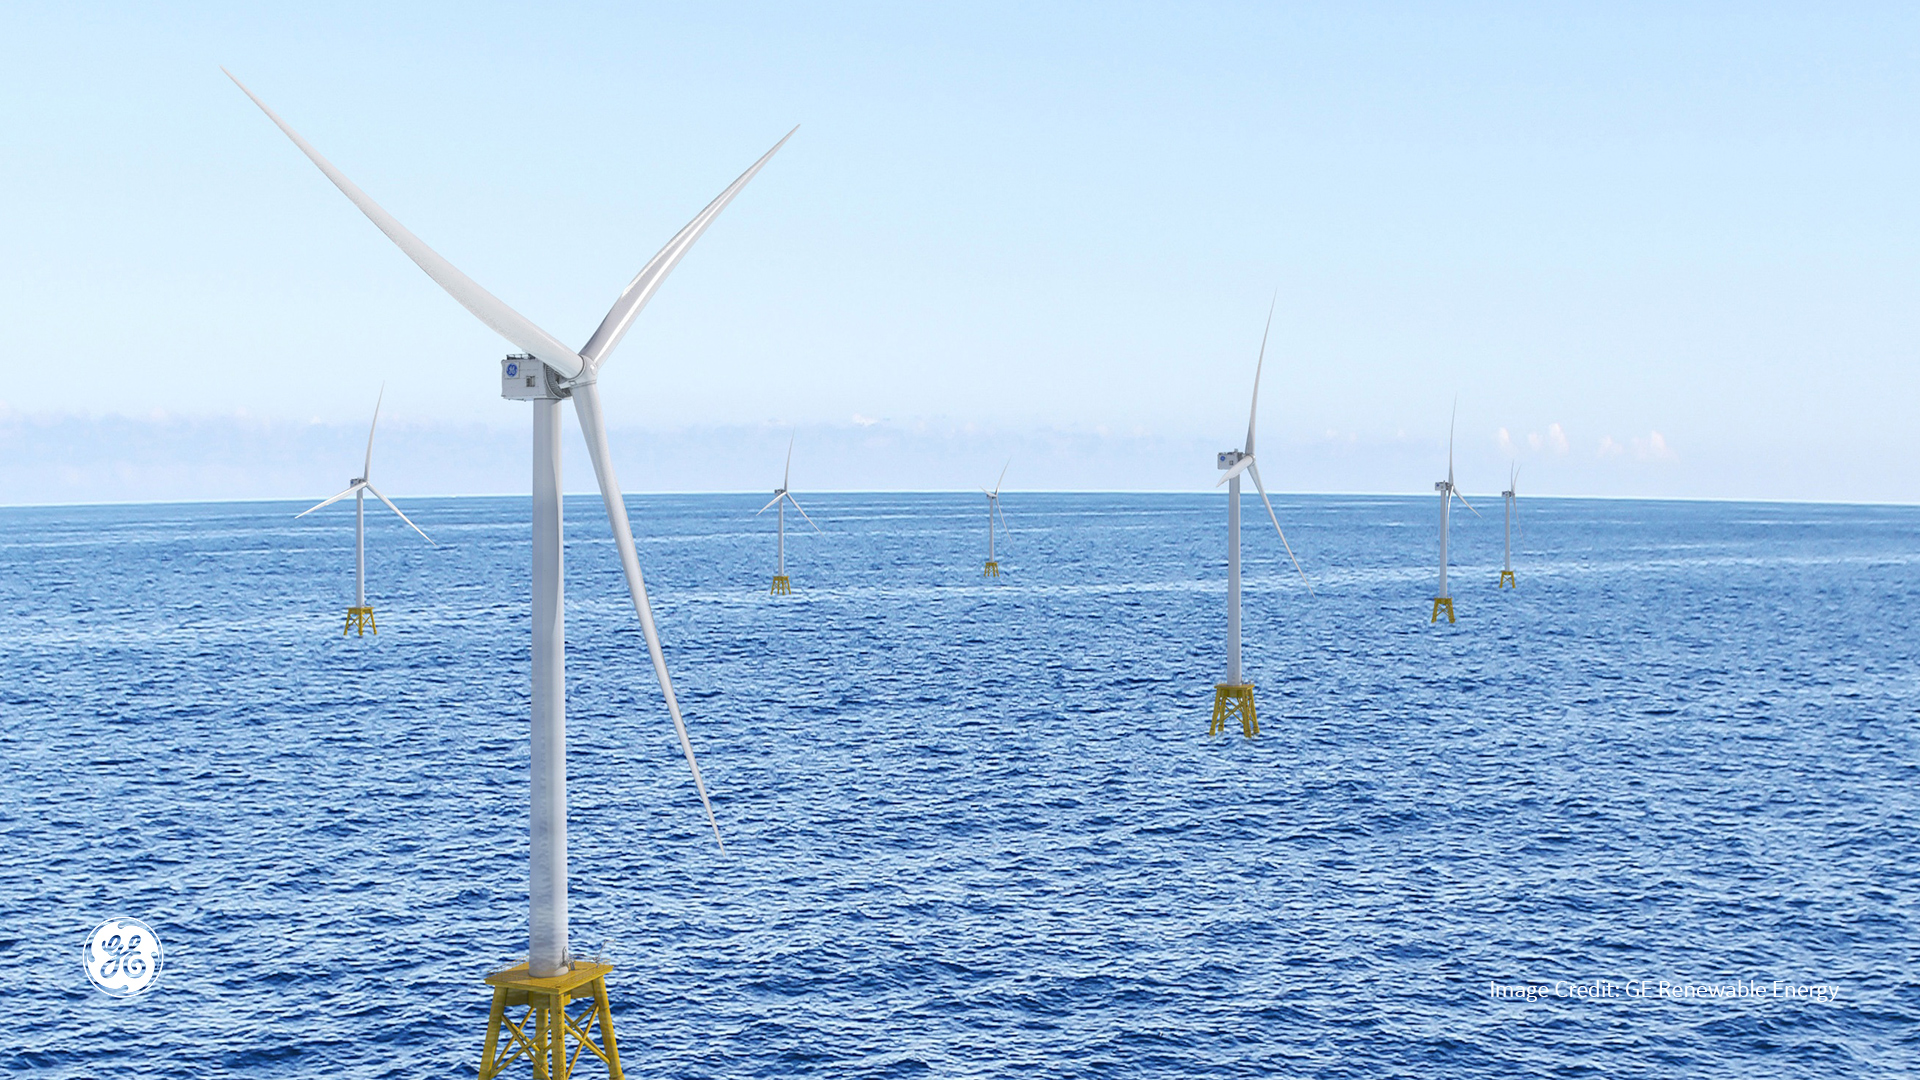 Works begin at Dogger Bank, the world's largest off-shore wind farm